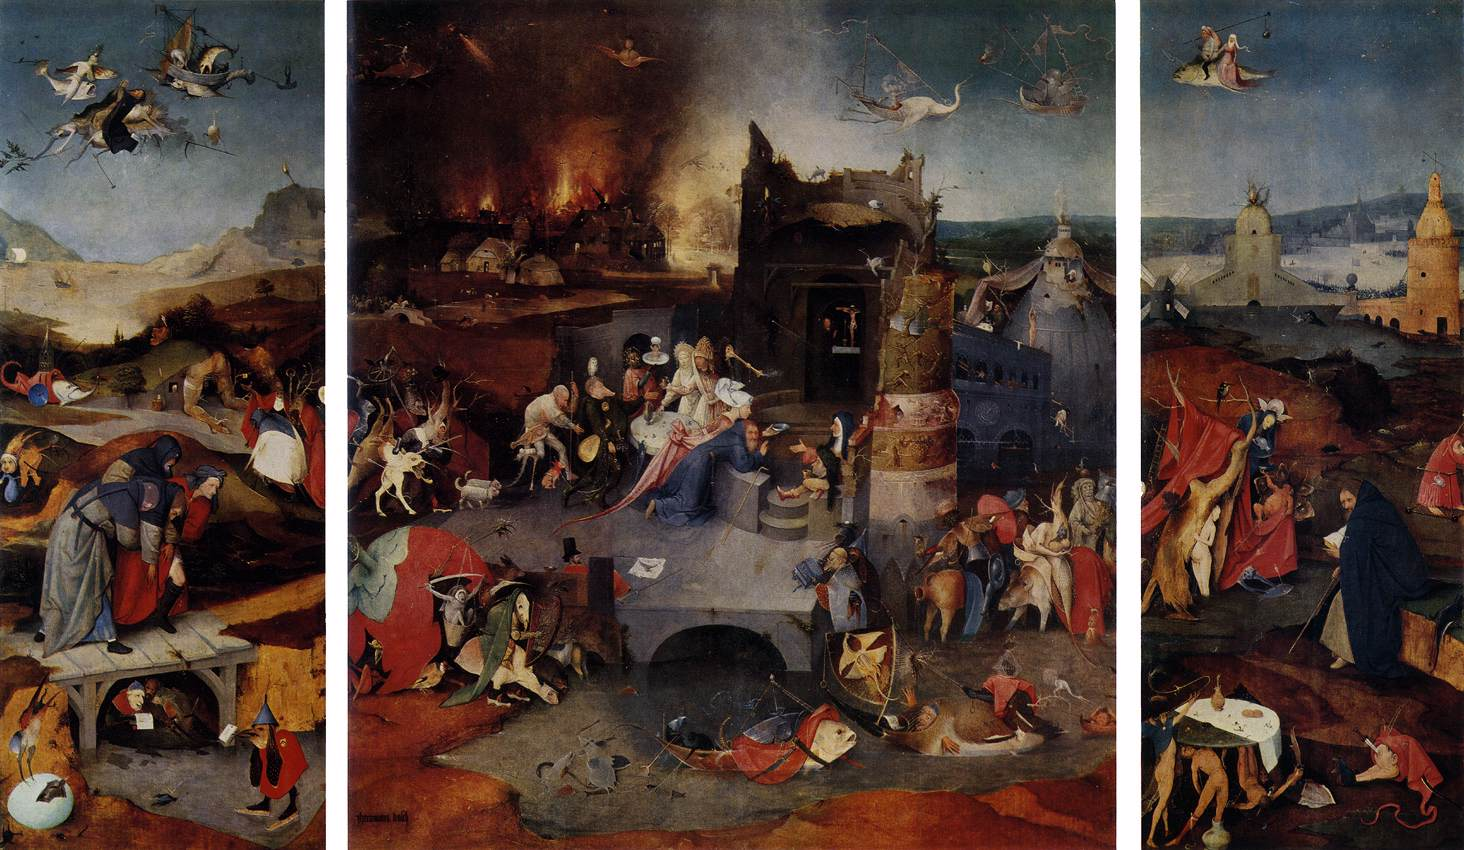 Biography of Hieronymous Bosch